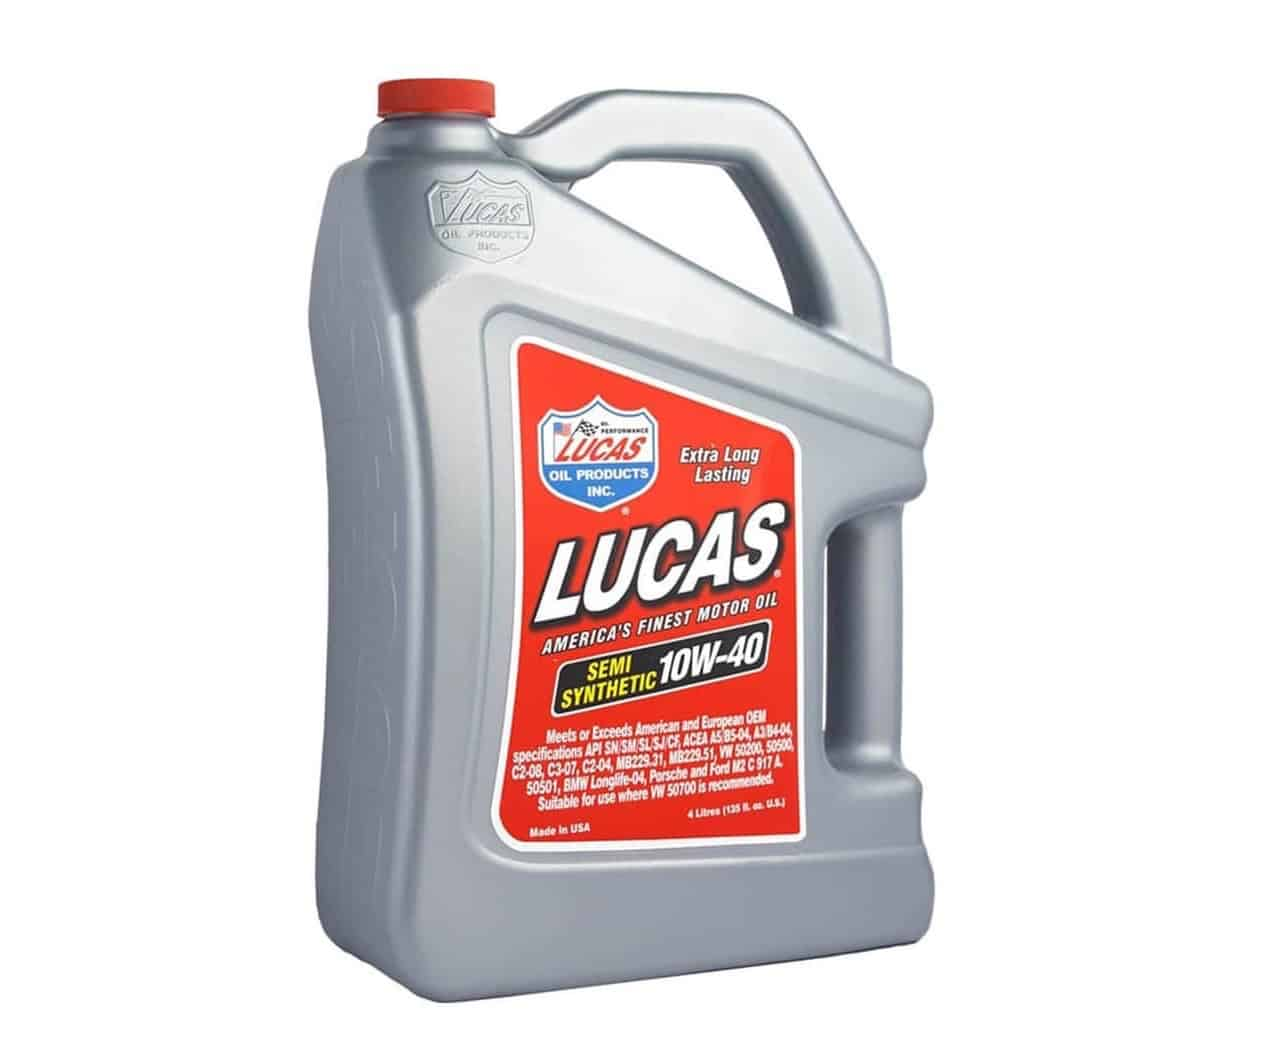 Lucas-Semi-Synthetic-10W-40